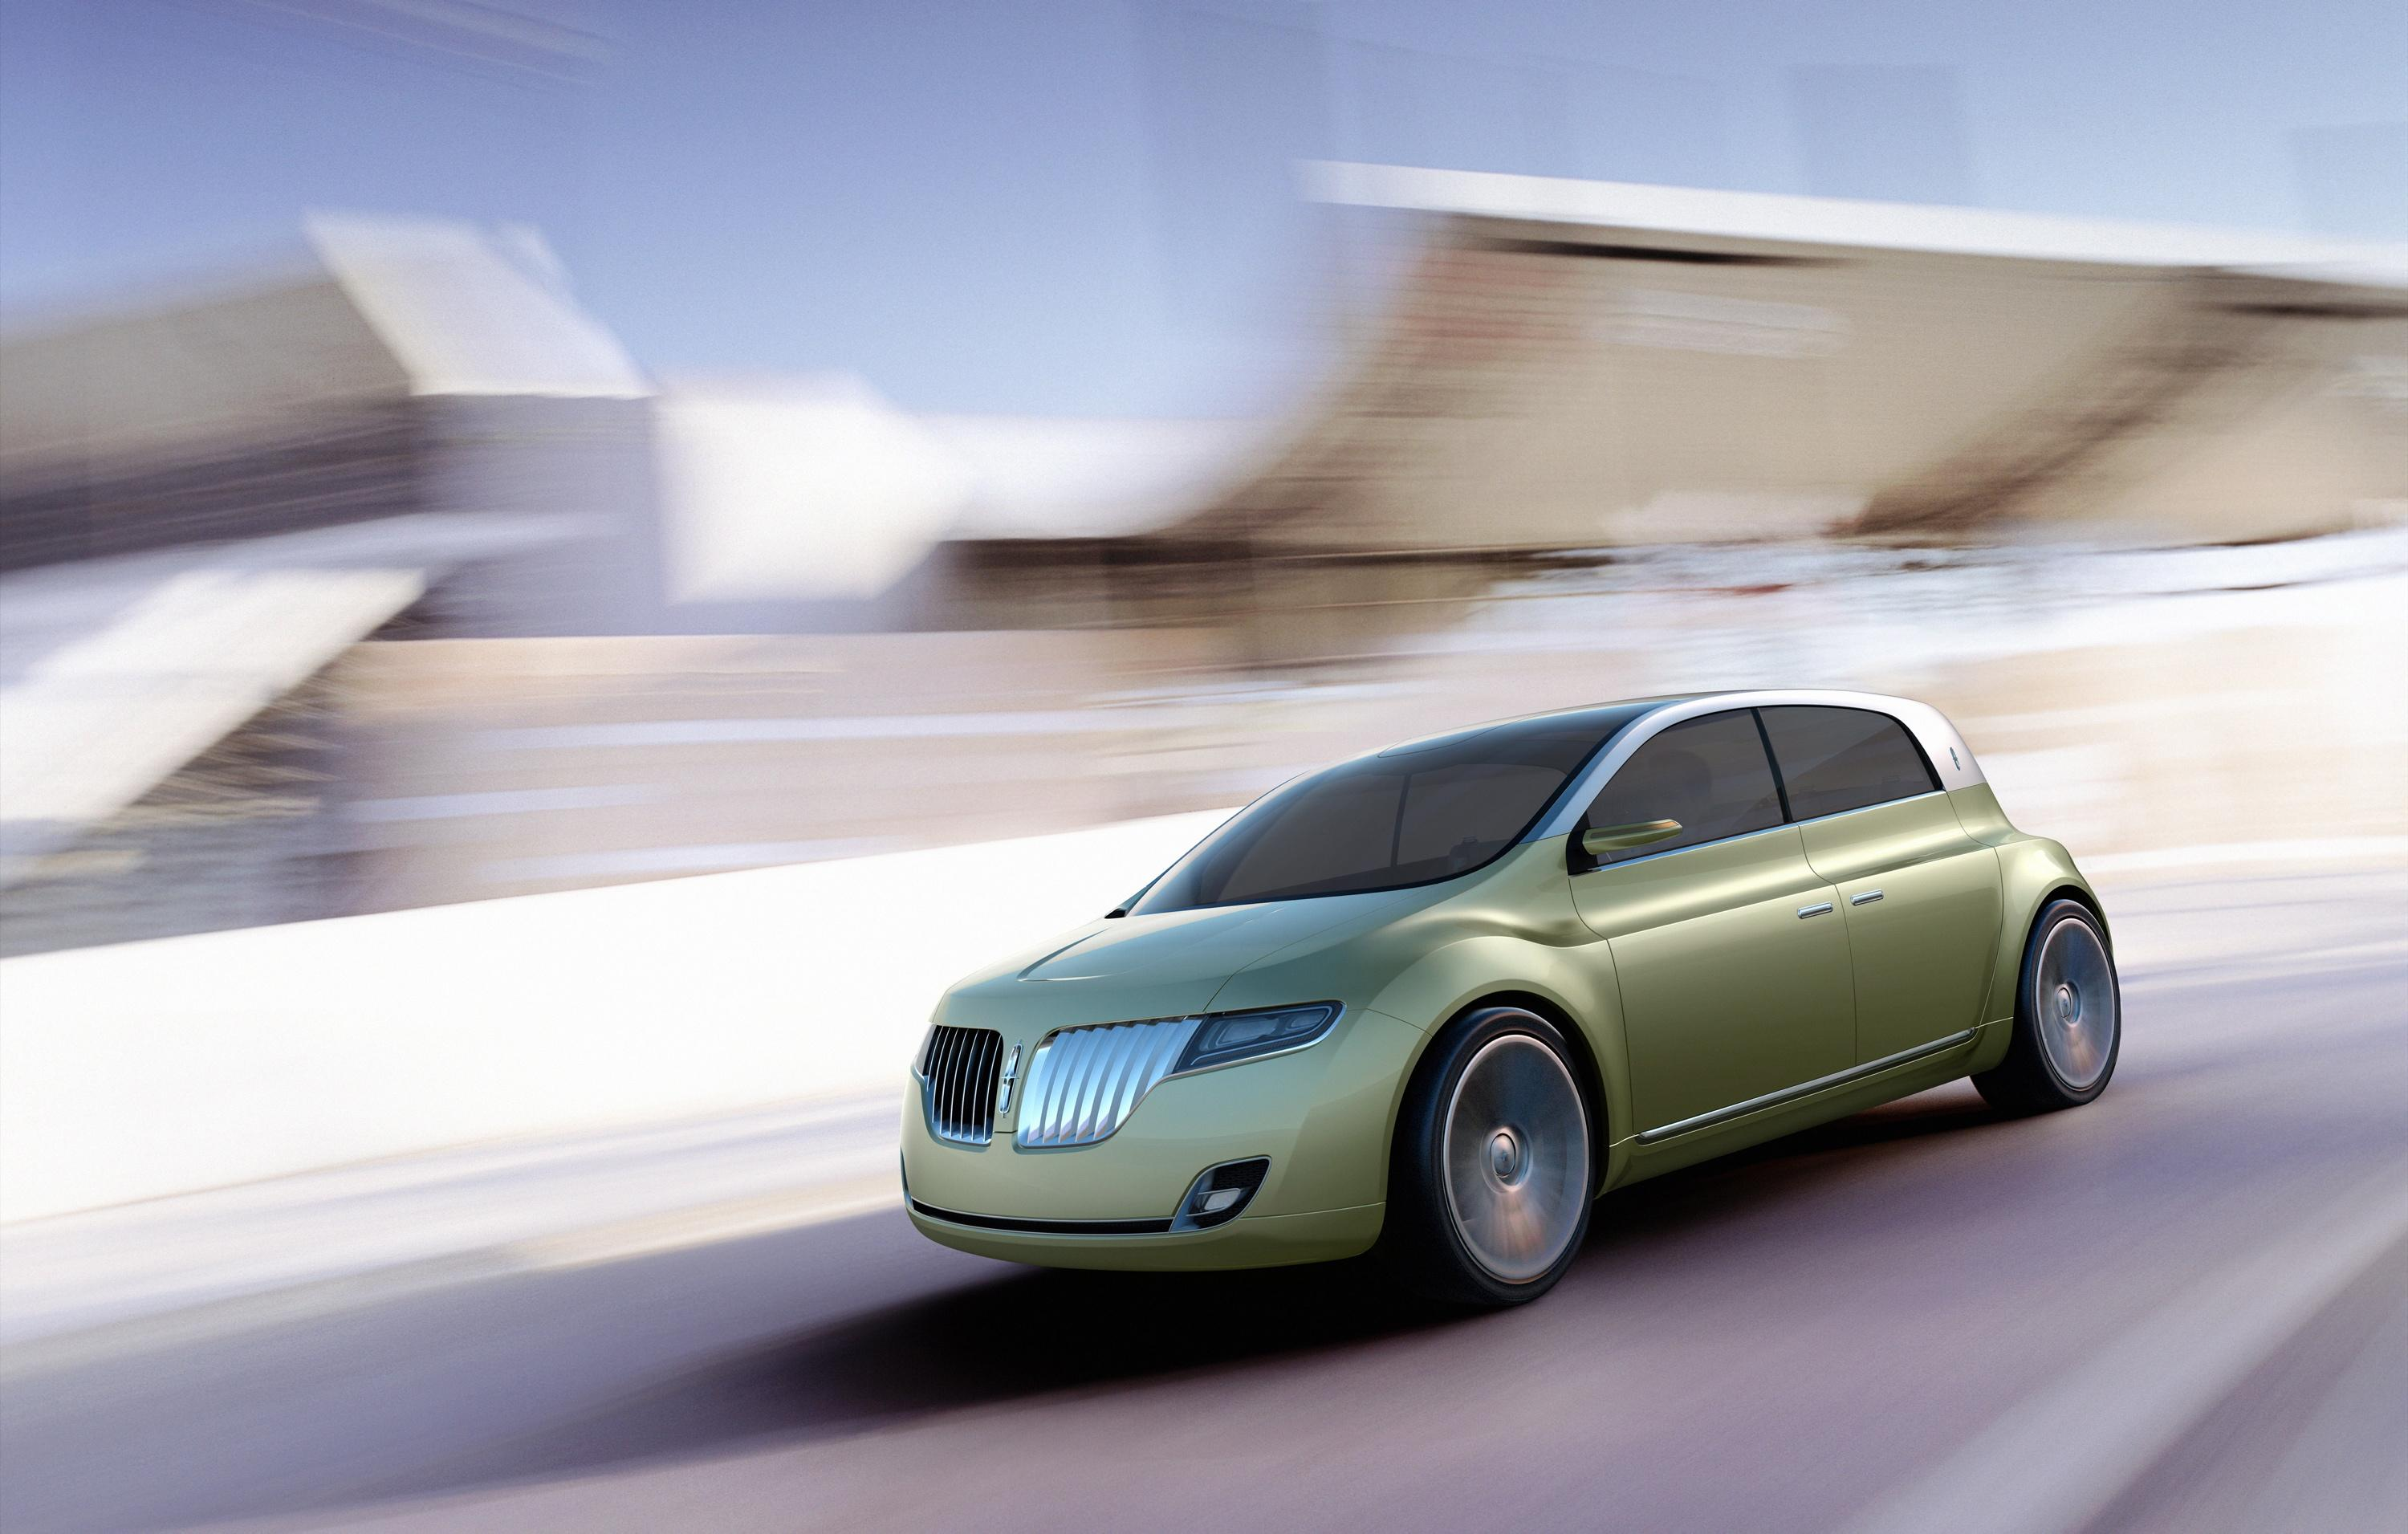 https://pictures.topspeed.com/IMG/jpg/200901/2009-lincoln-c-concept-4.jpg